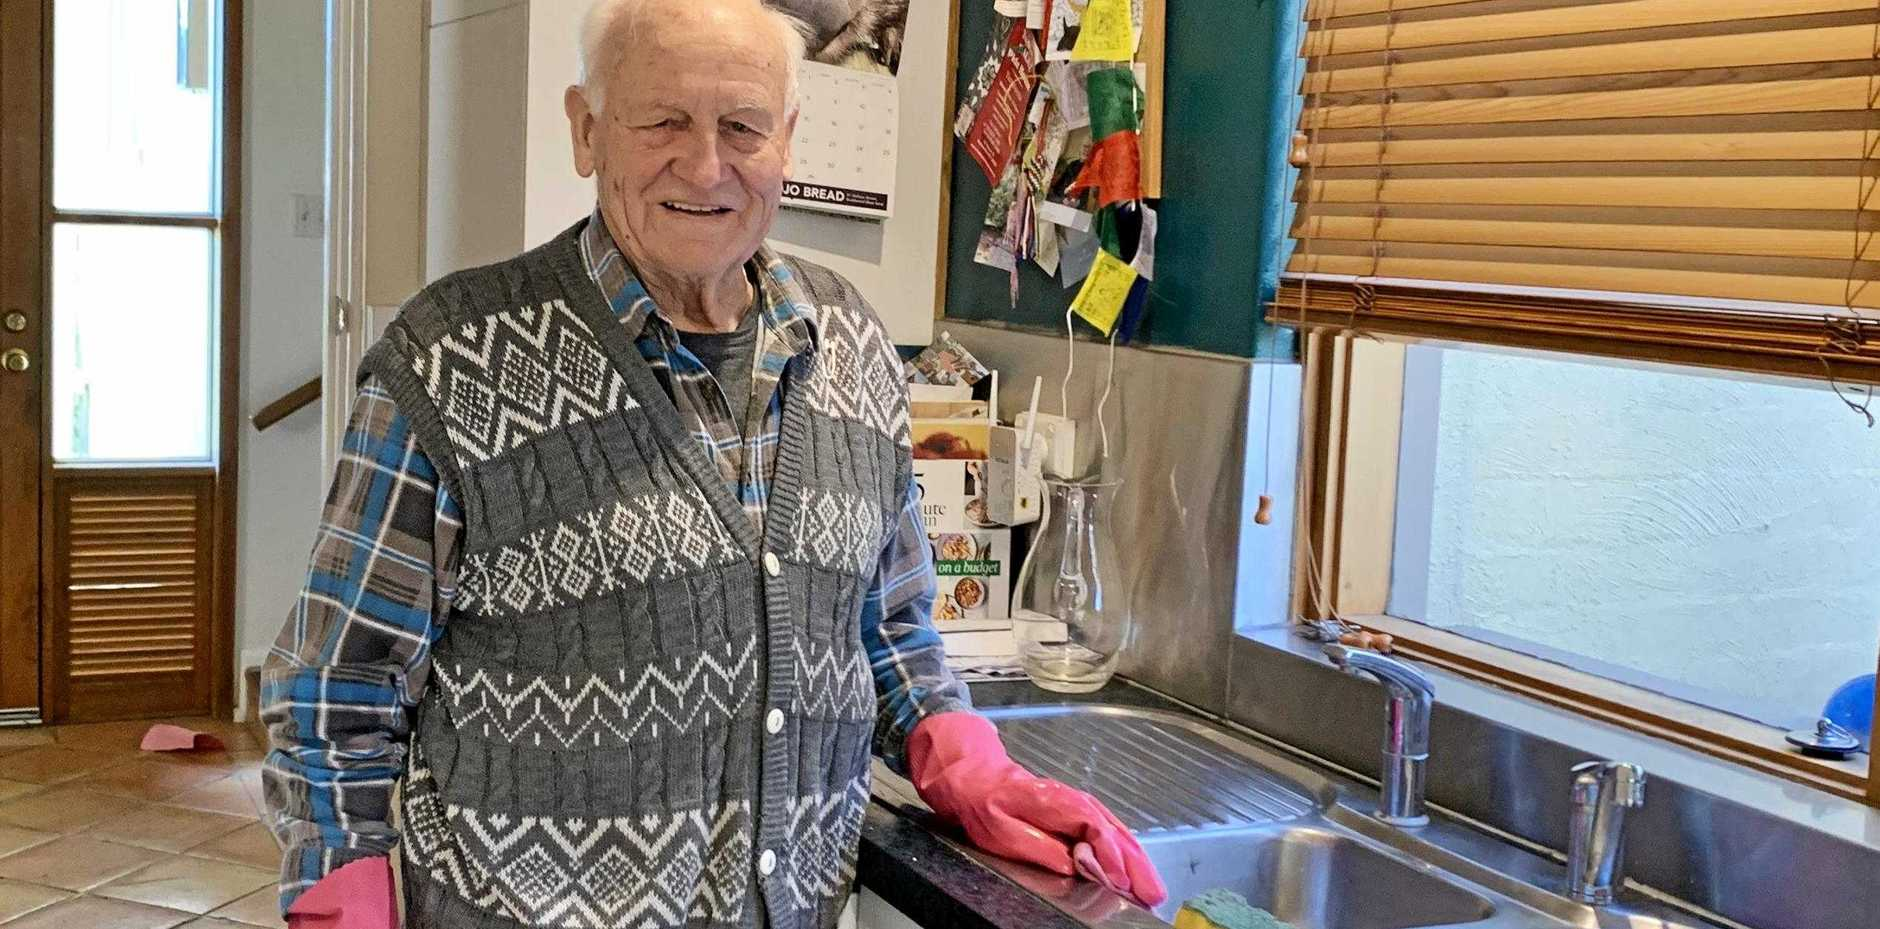 OLDEST WORKER: Werner Meinhold at 91 is still happily working.